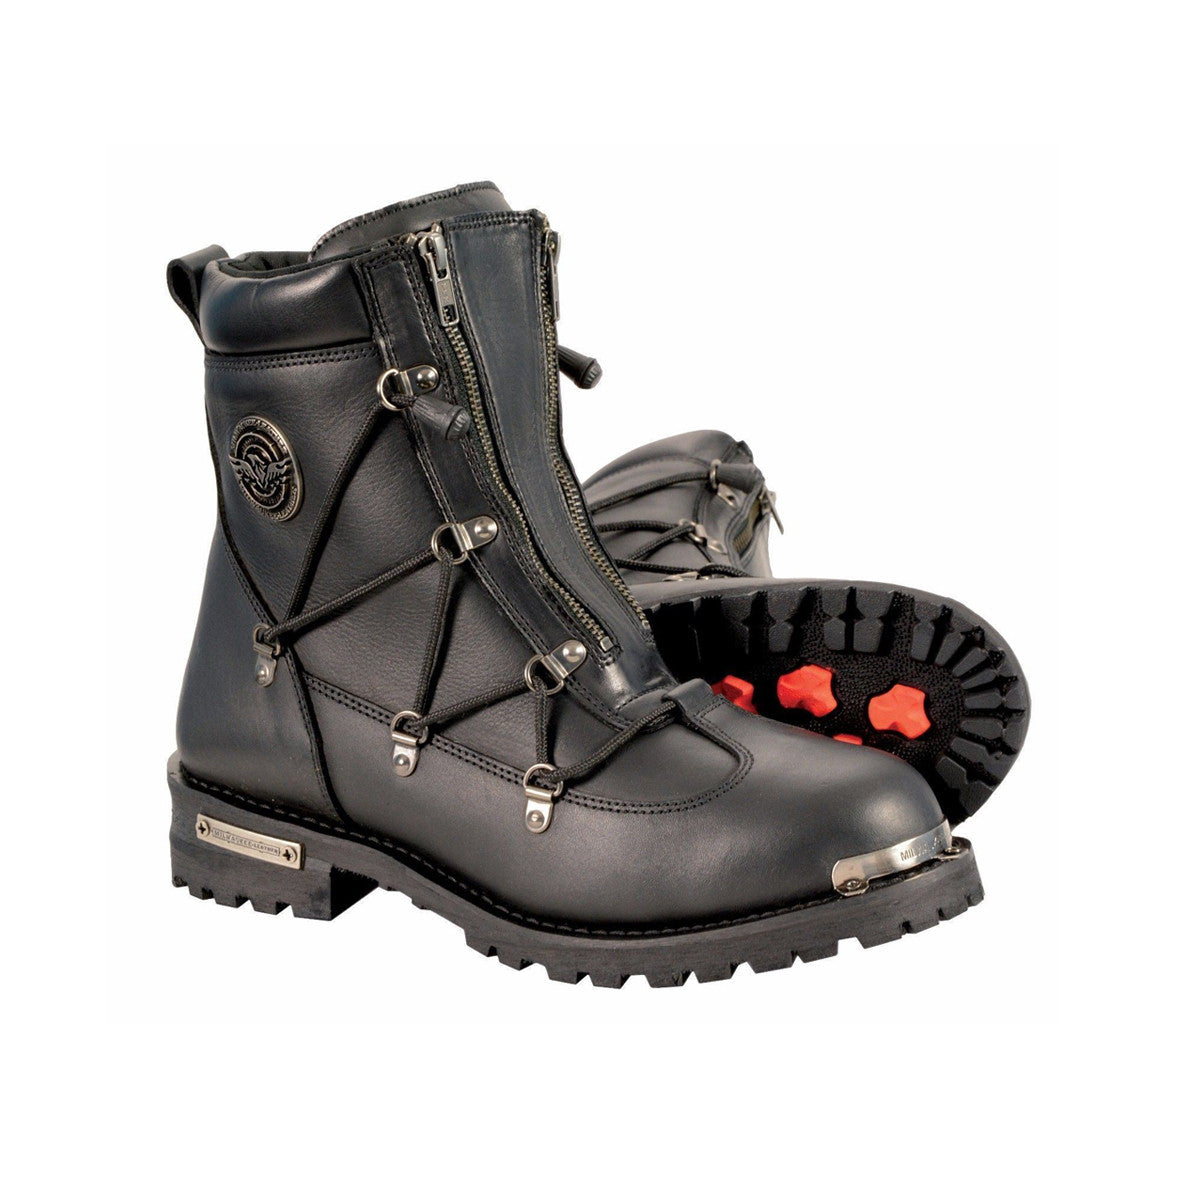 MEN'S RIDING MOTORCYCLE LEATHER BOOT, WATERPROOF FRONT DOUBLE ZIPPER, SIDE LACES